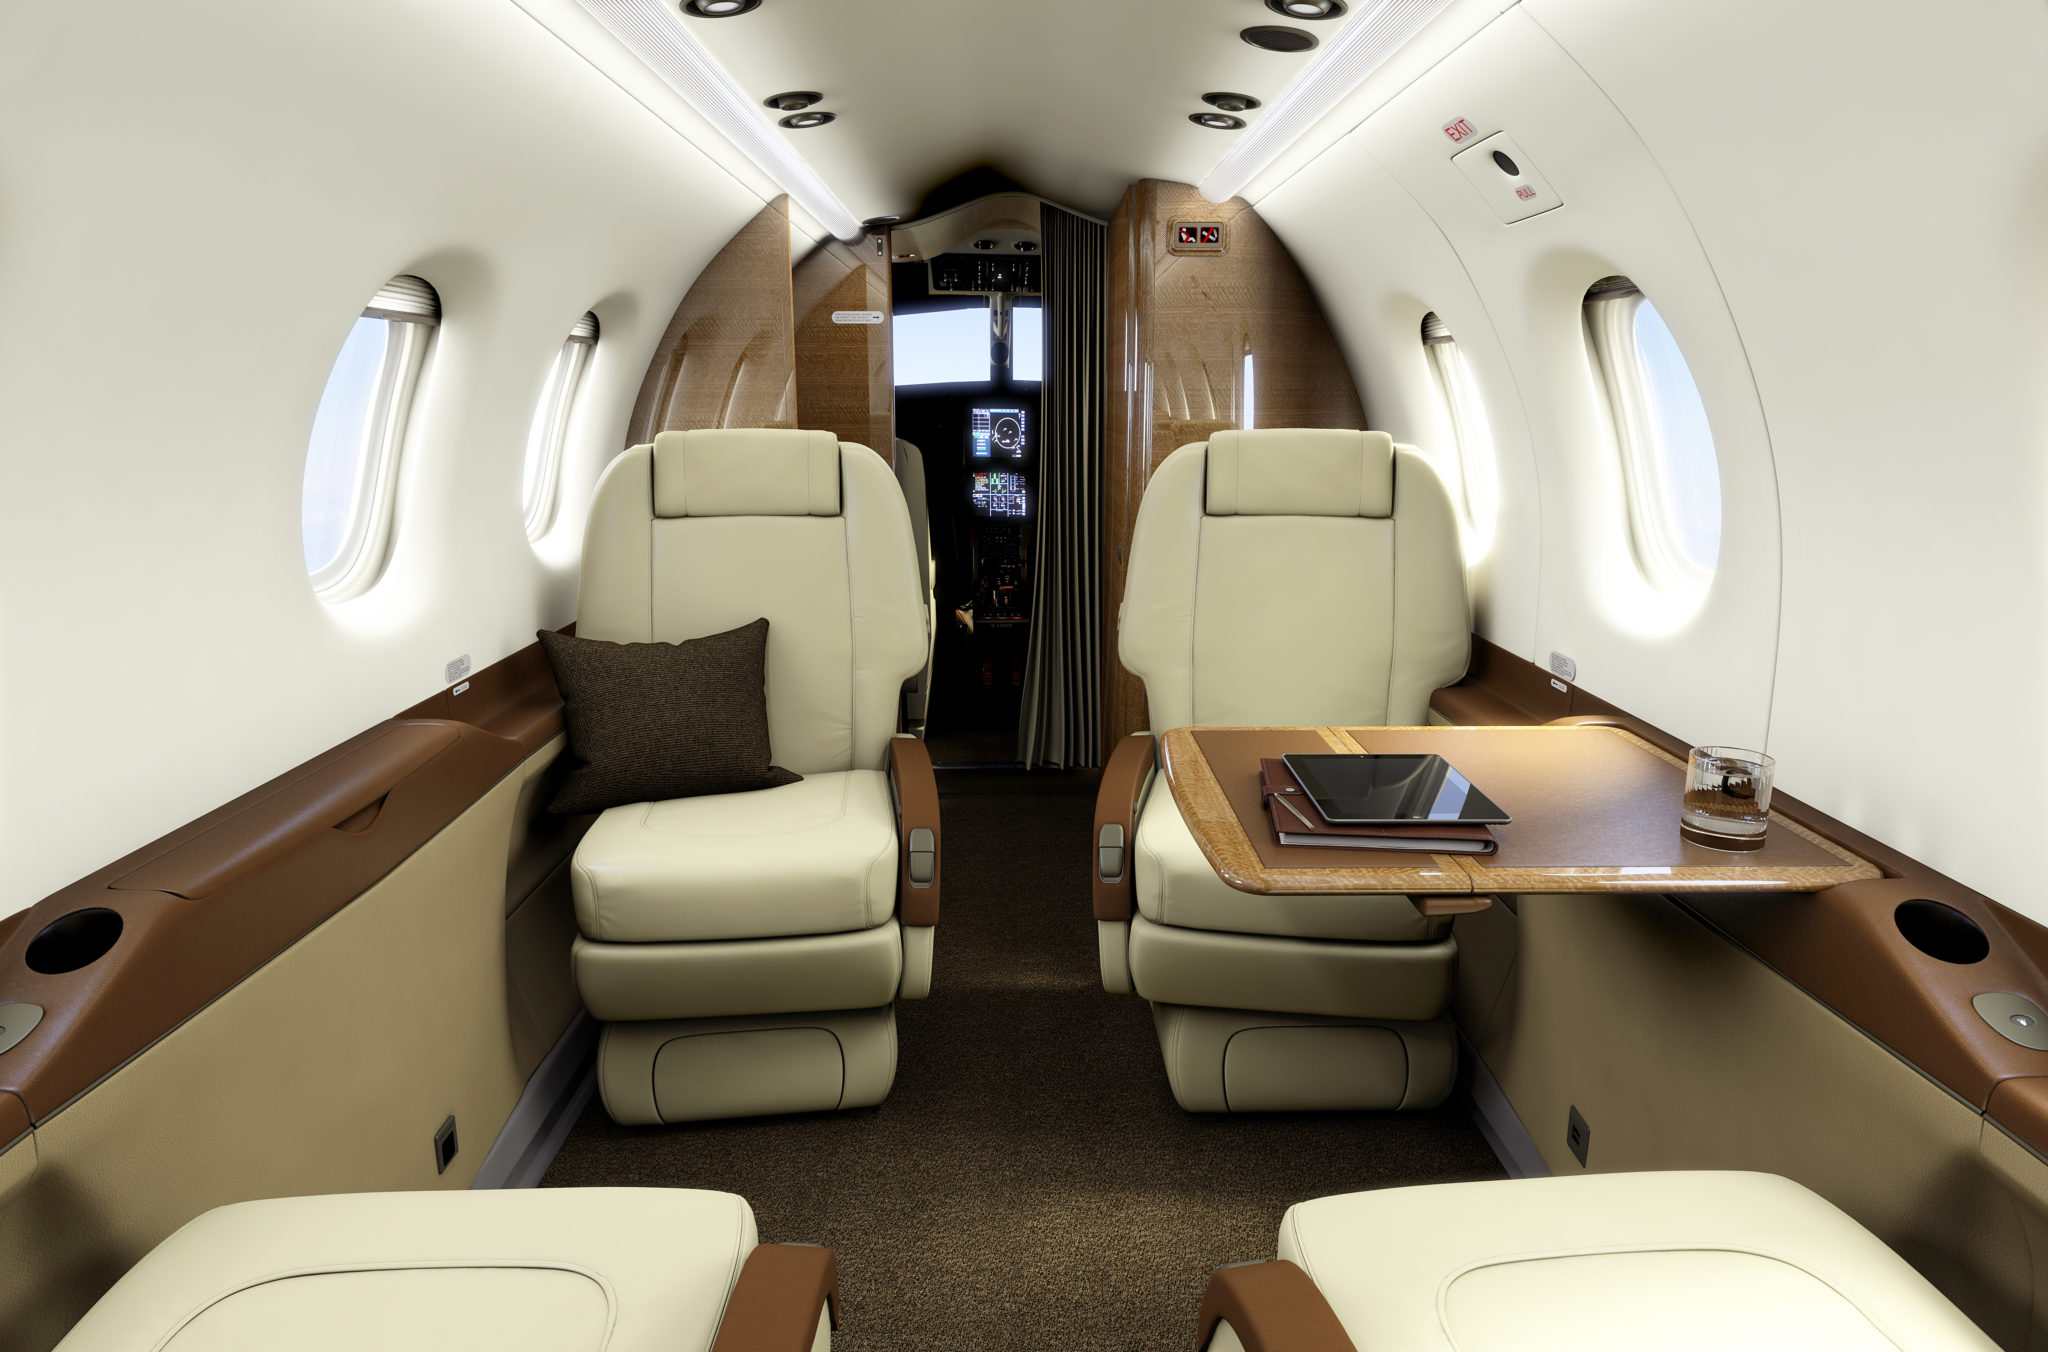 Comfortable seating for 9 makes this aircraft a nice way of commuting. Image: